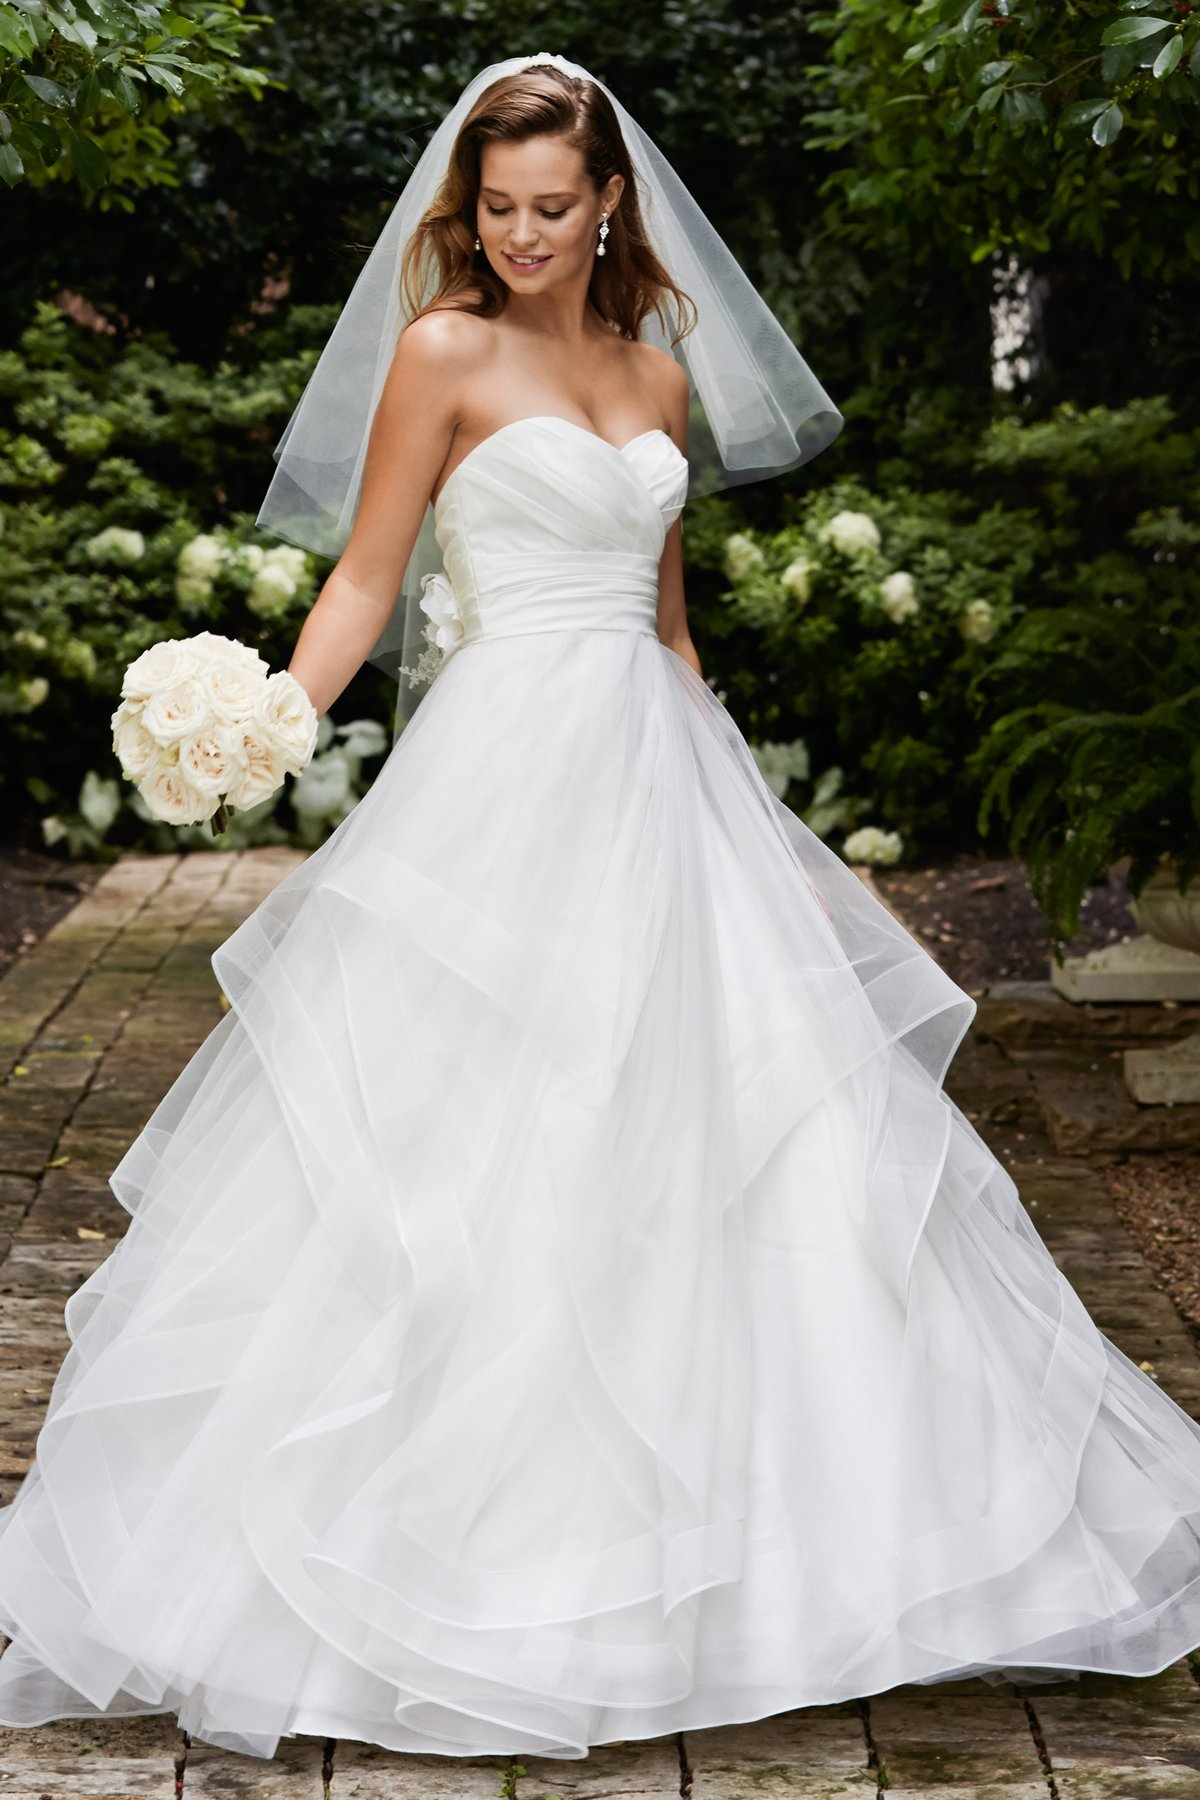 Collection of designer and bridal gowns to fit your style and budget